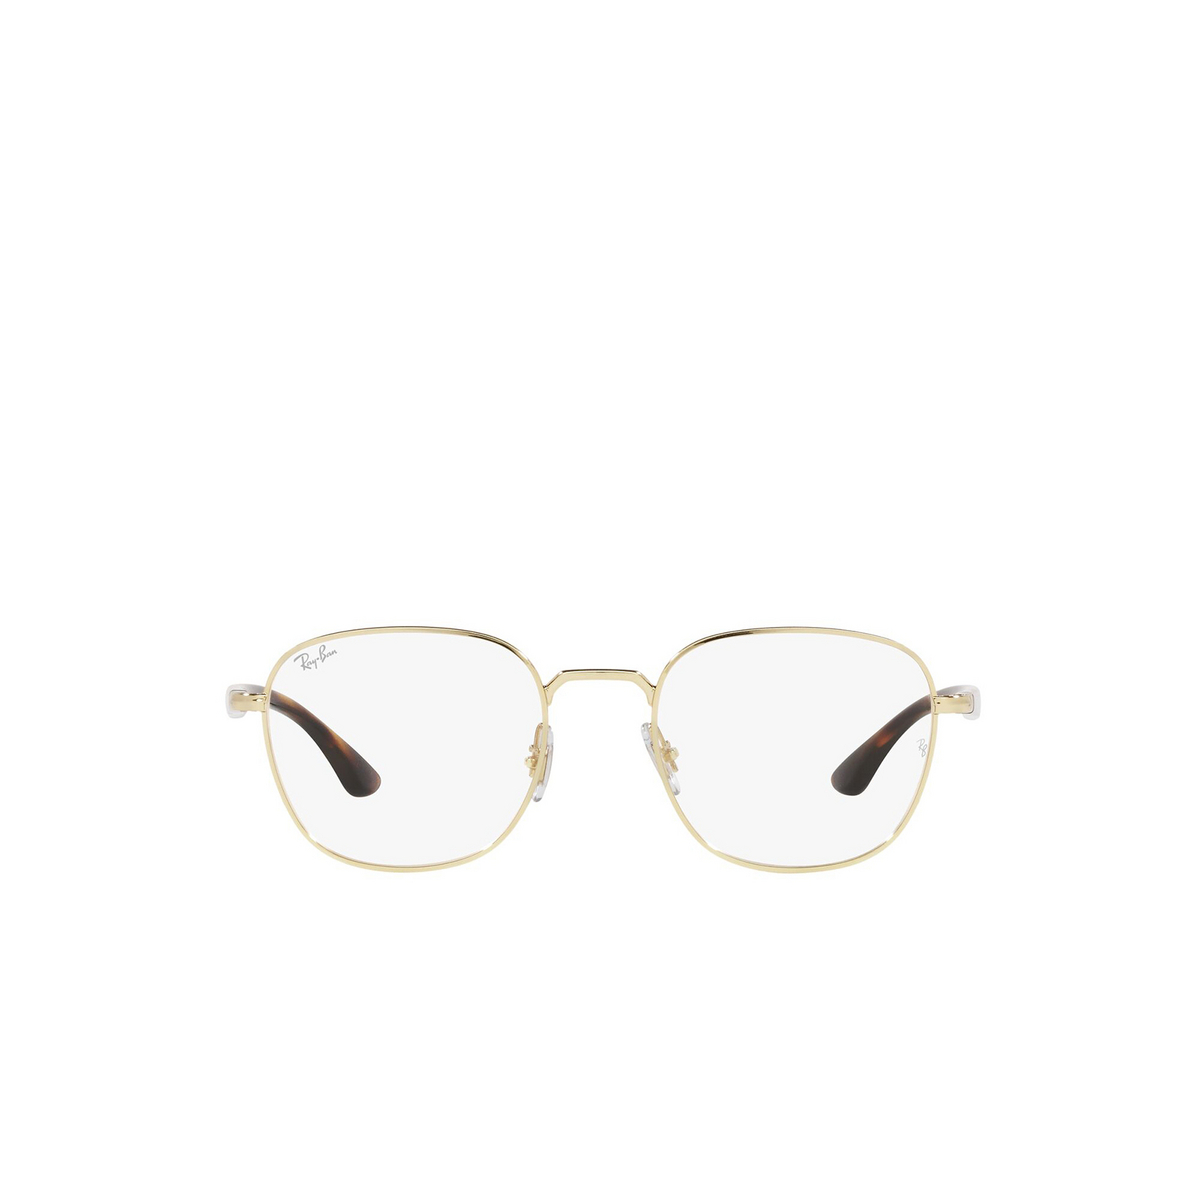 Ray-Ban® Square Eyeglasses: RX6477 color Arista 3119 - front view.